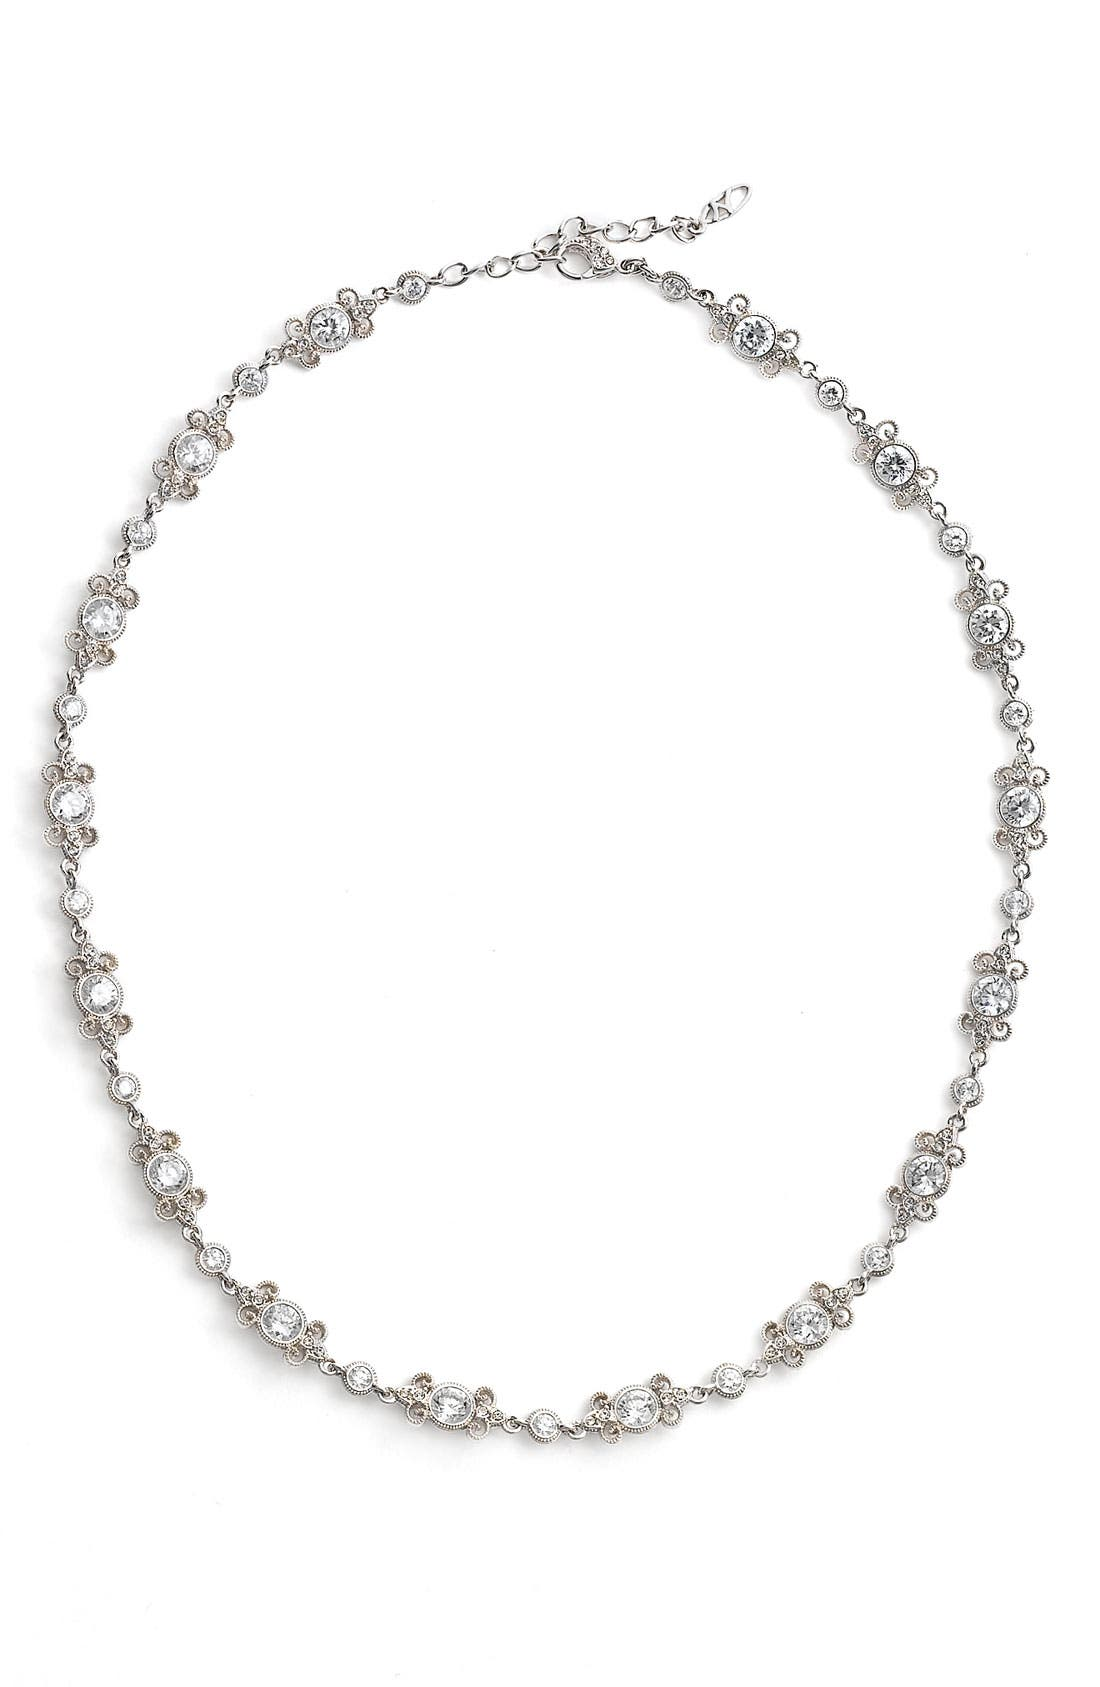 Alternate Image 1 Selected - Nadri 'Poesia' Crystal Necklace